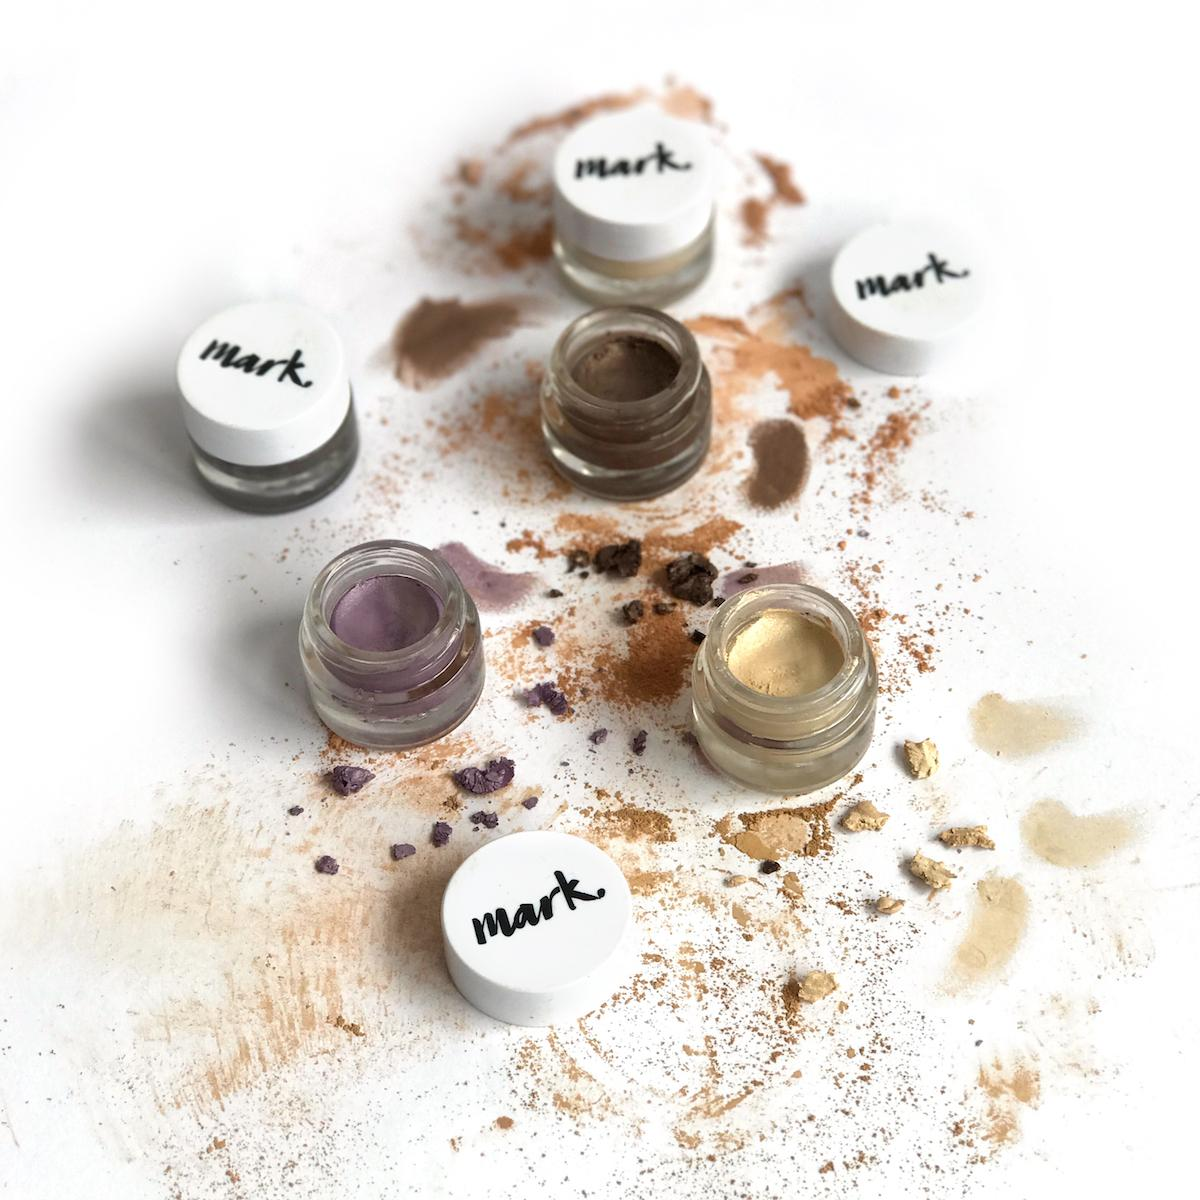 Avon Mark 18H Cream-gel Eyeshadow Beautyfullblog